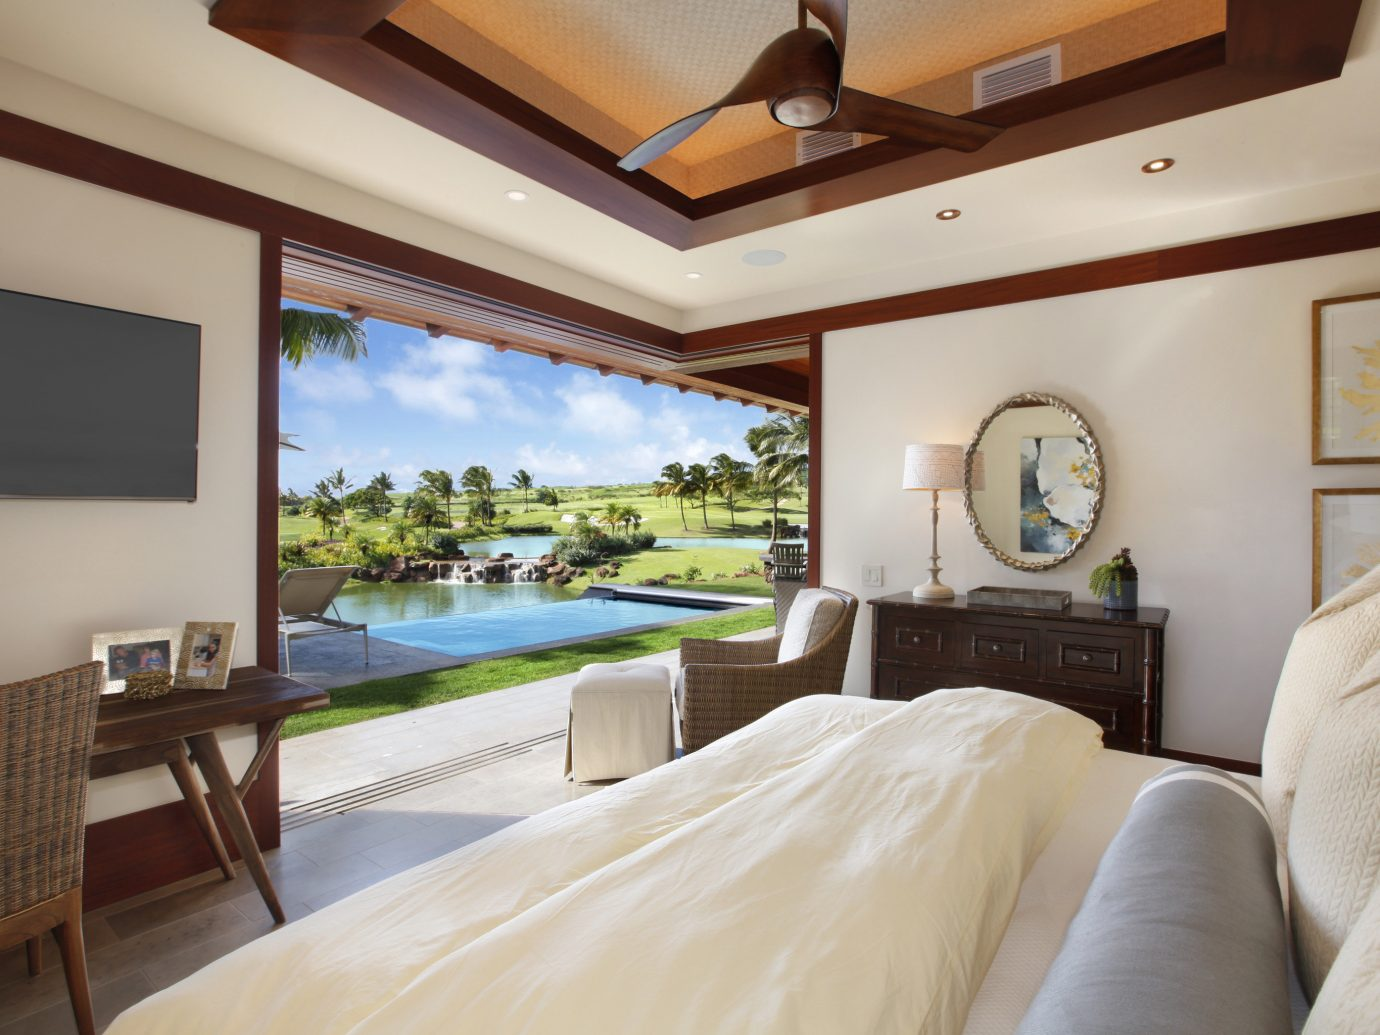 Greenery Hotels lakes Luxury open-air outdoor pool Pool remote Romance Scenic views Tropical view bed indoor wall room Bedroom property estate hotel ceiling Suite Villa home interior design Resort